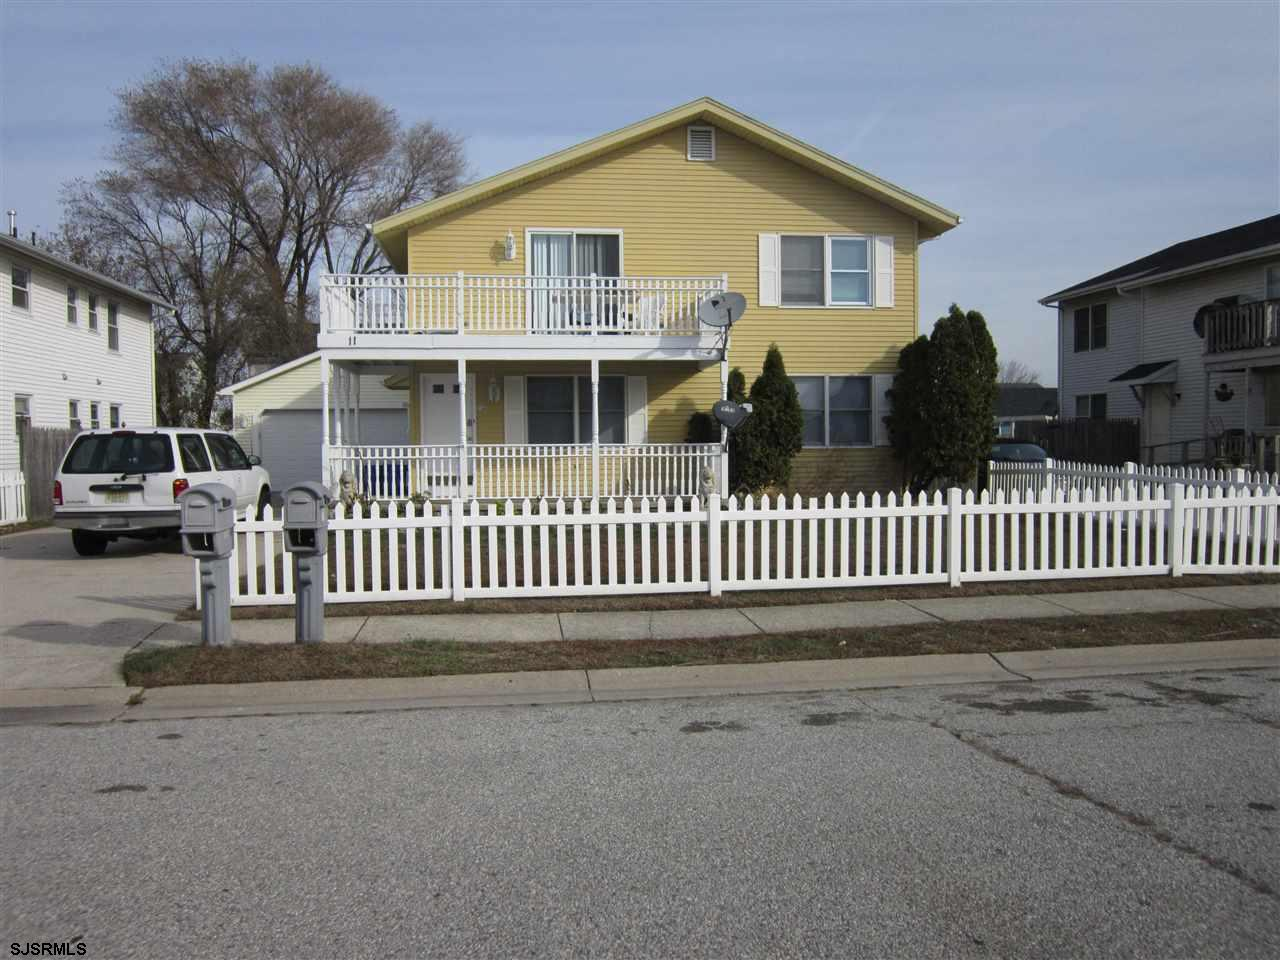 11 Lighthouse B Cv Brigantine, NJ 08203 513522